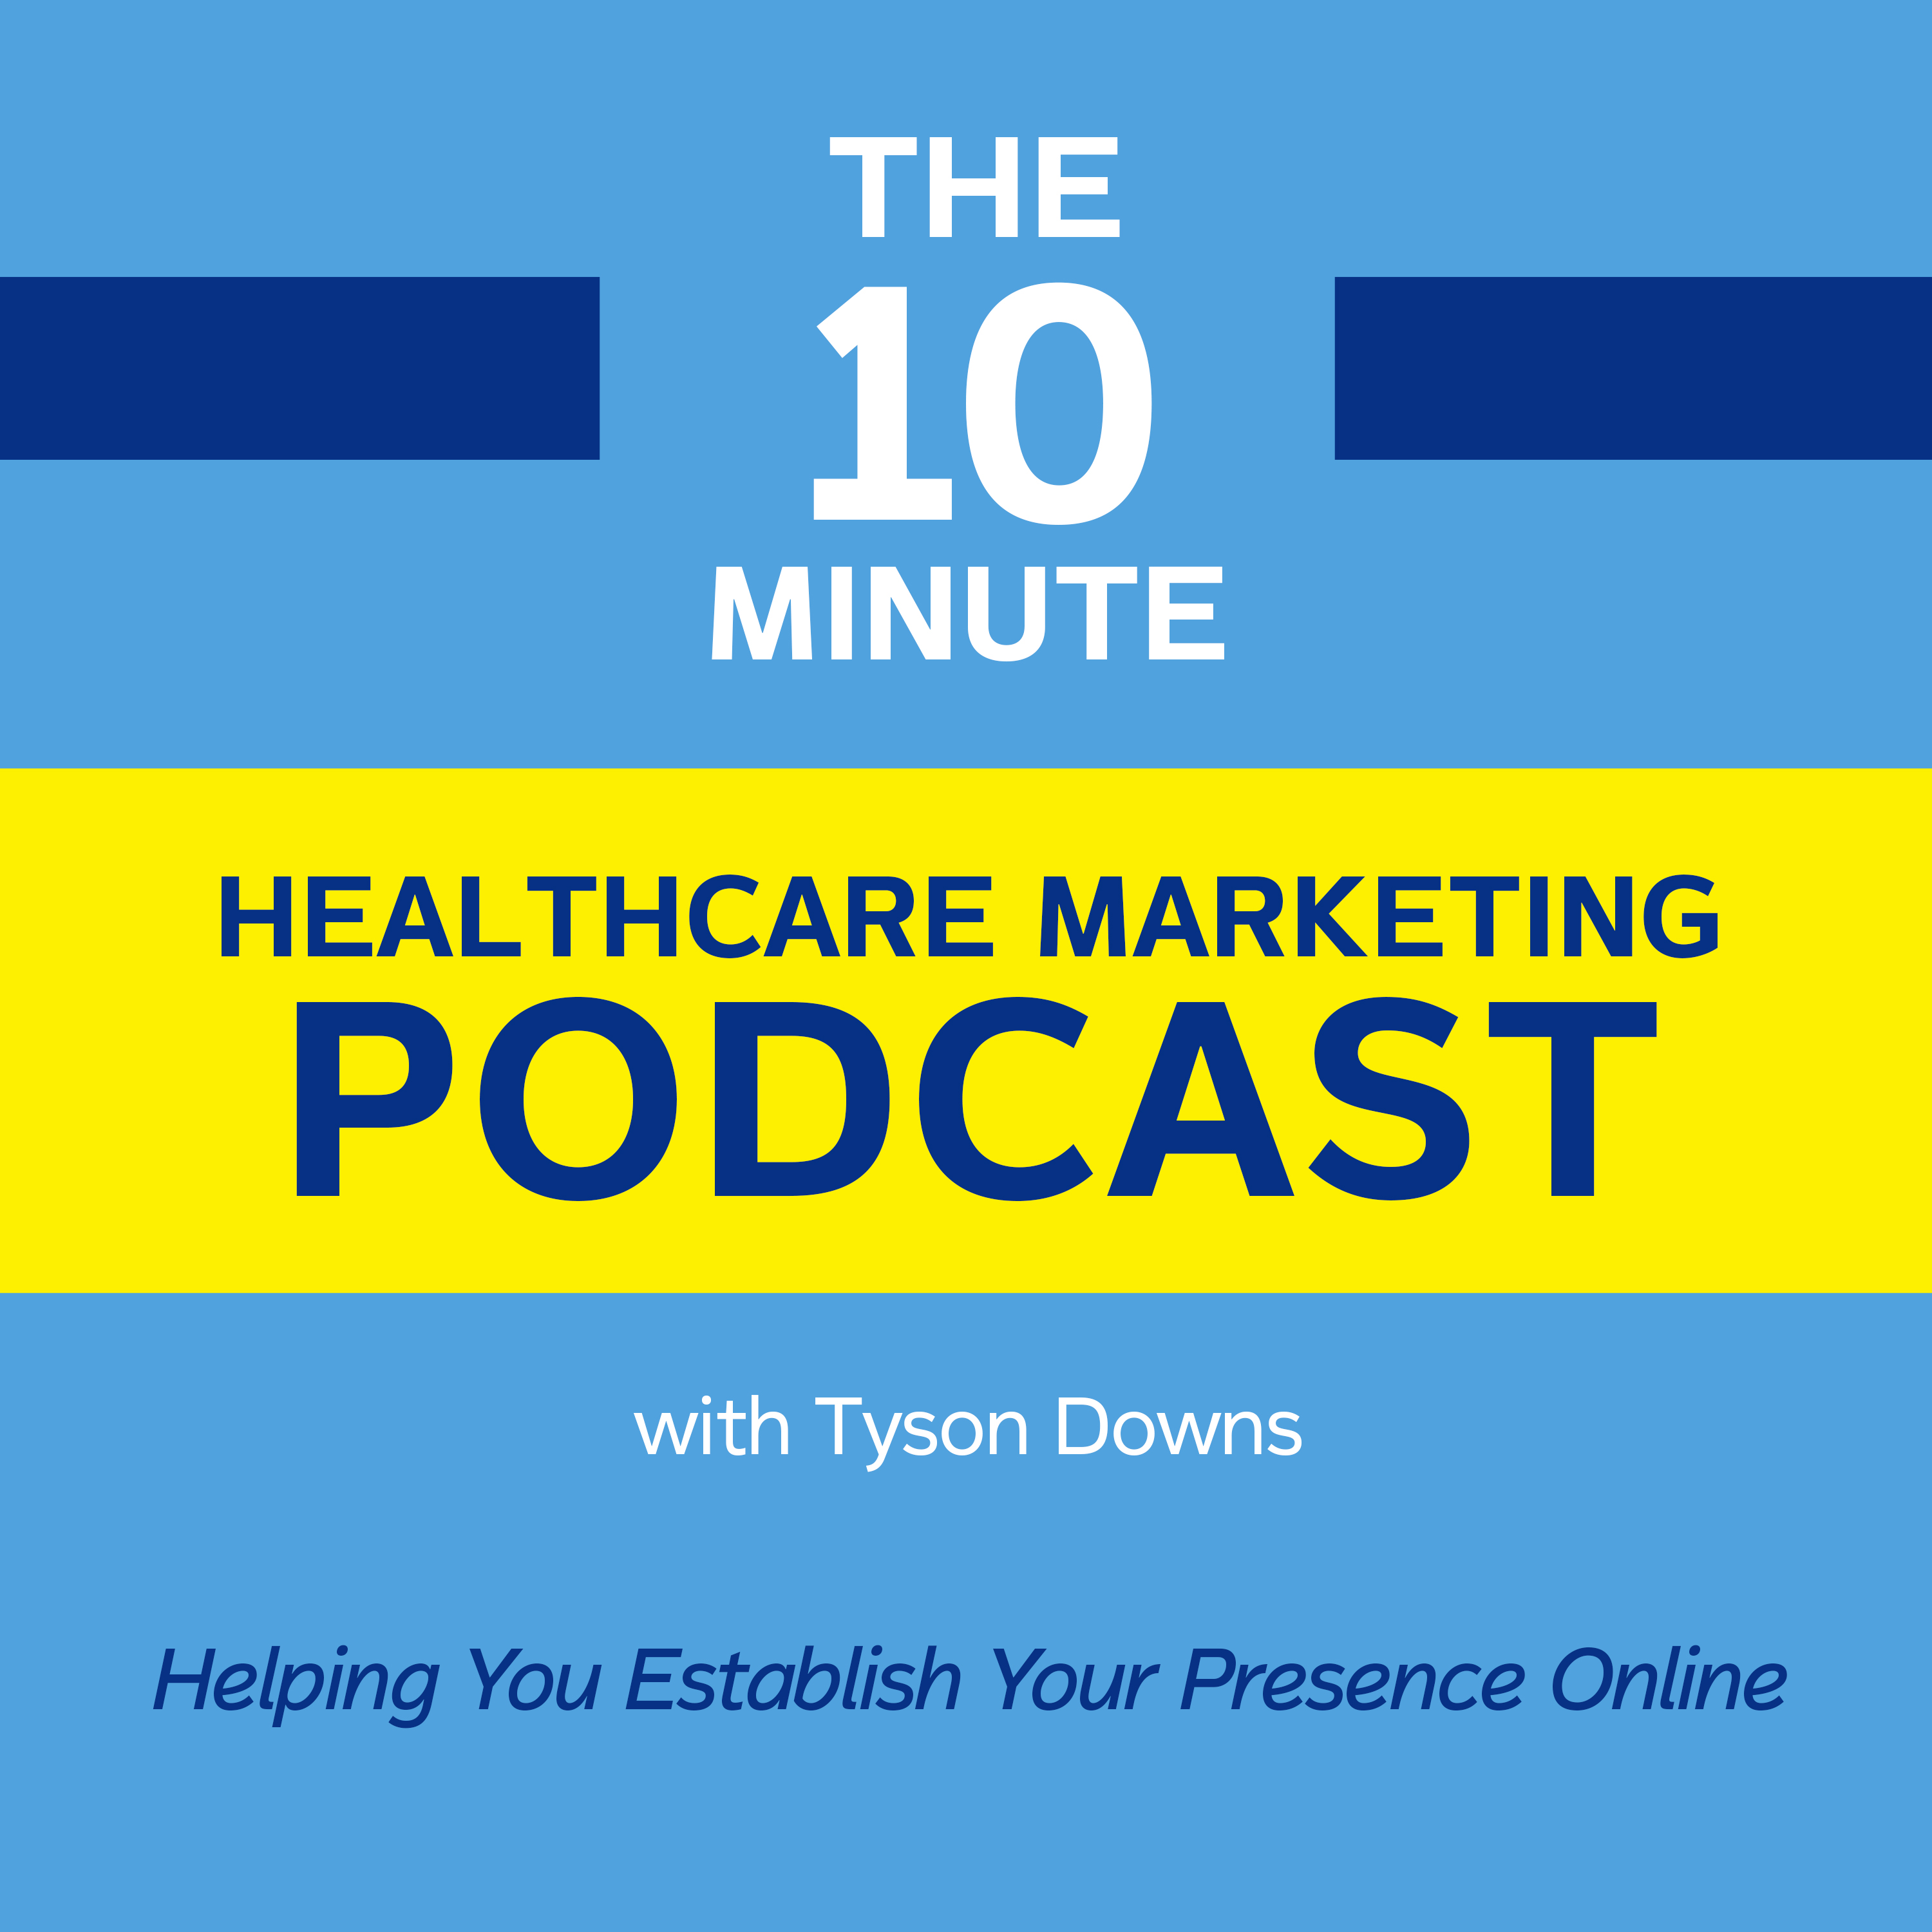 The 10 Minute Healthcare Marketing Podcast